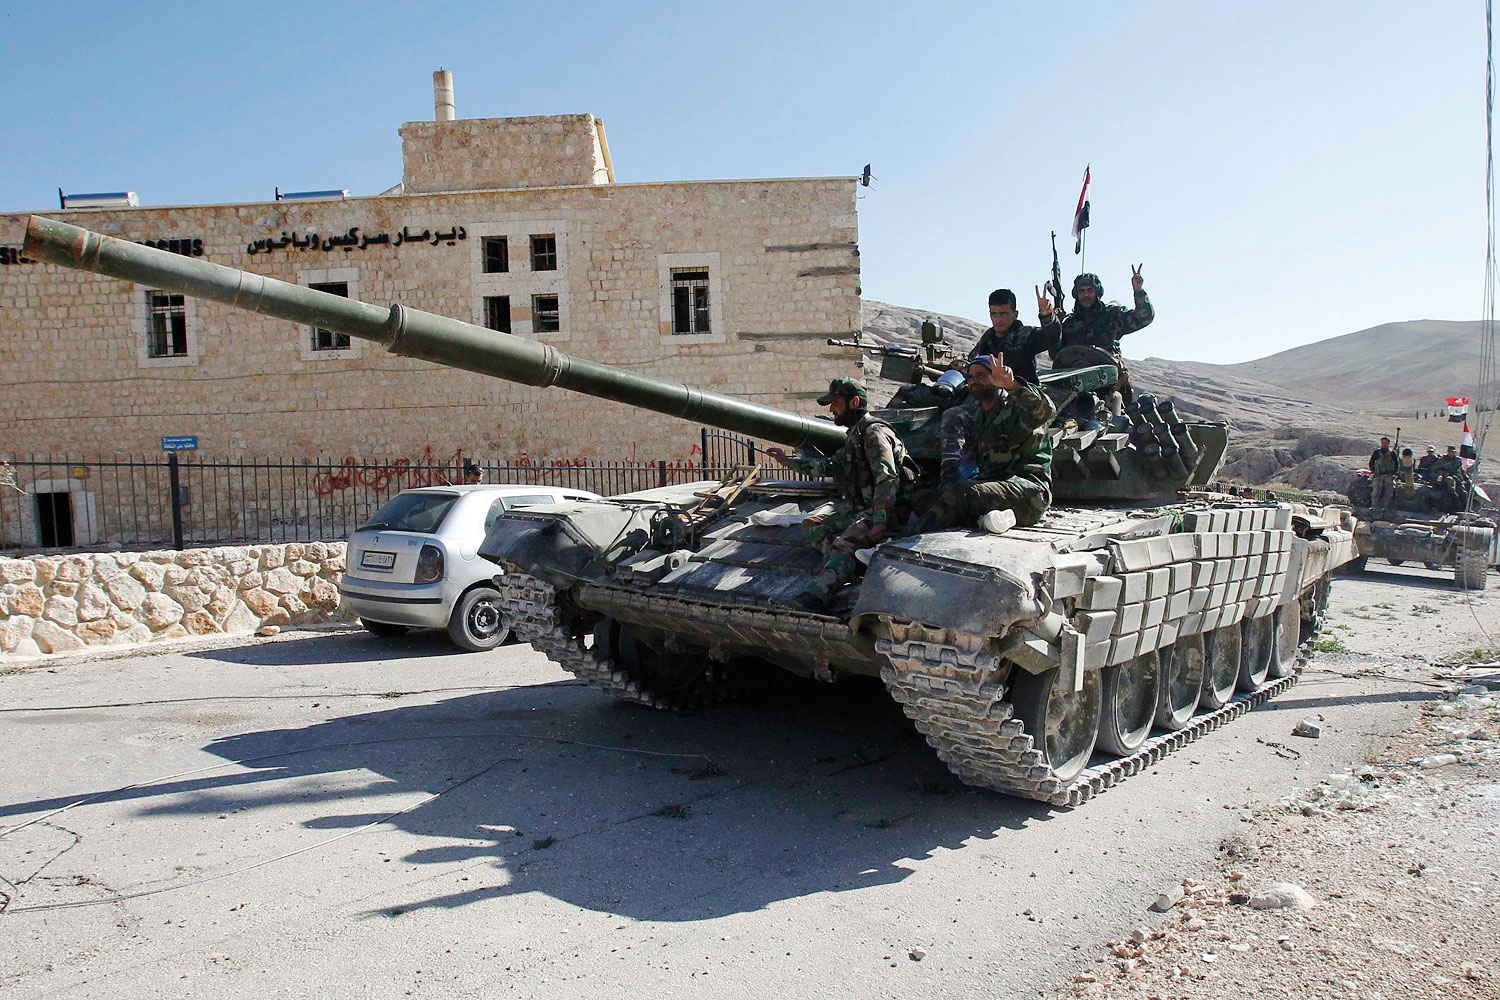 Soldiers loyal to Syria's President Bashar Assad gesture from their tank, as they pass Mar Bacchus Sarkis monastery, in Maaloula village, northeast of Damascus, after taking control of the village from rebel fighters, April 14, 2014.